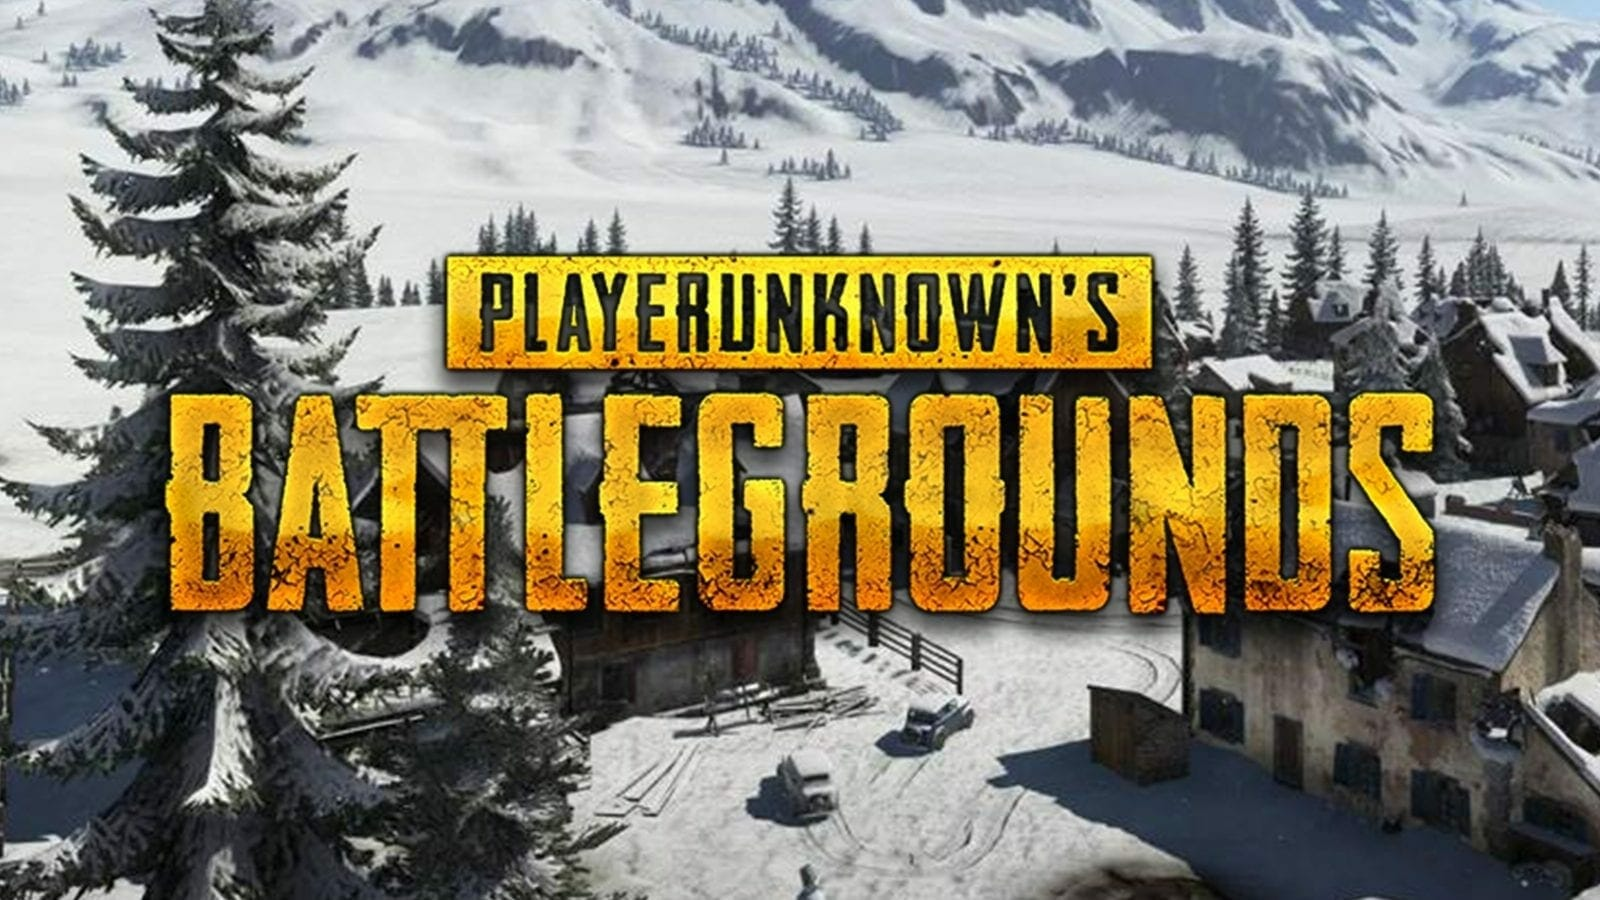 Download PUBG Mobile 0.10.5 APK For Android Devices, Patch